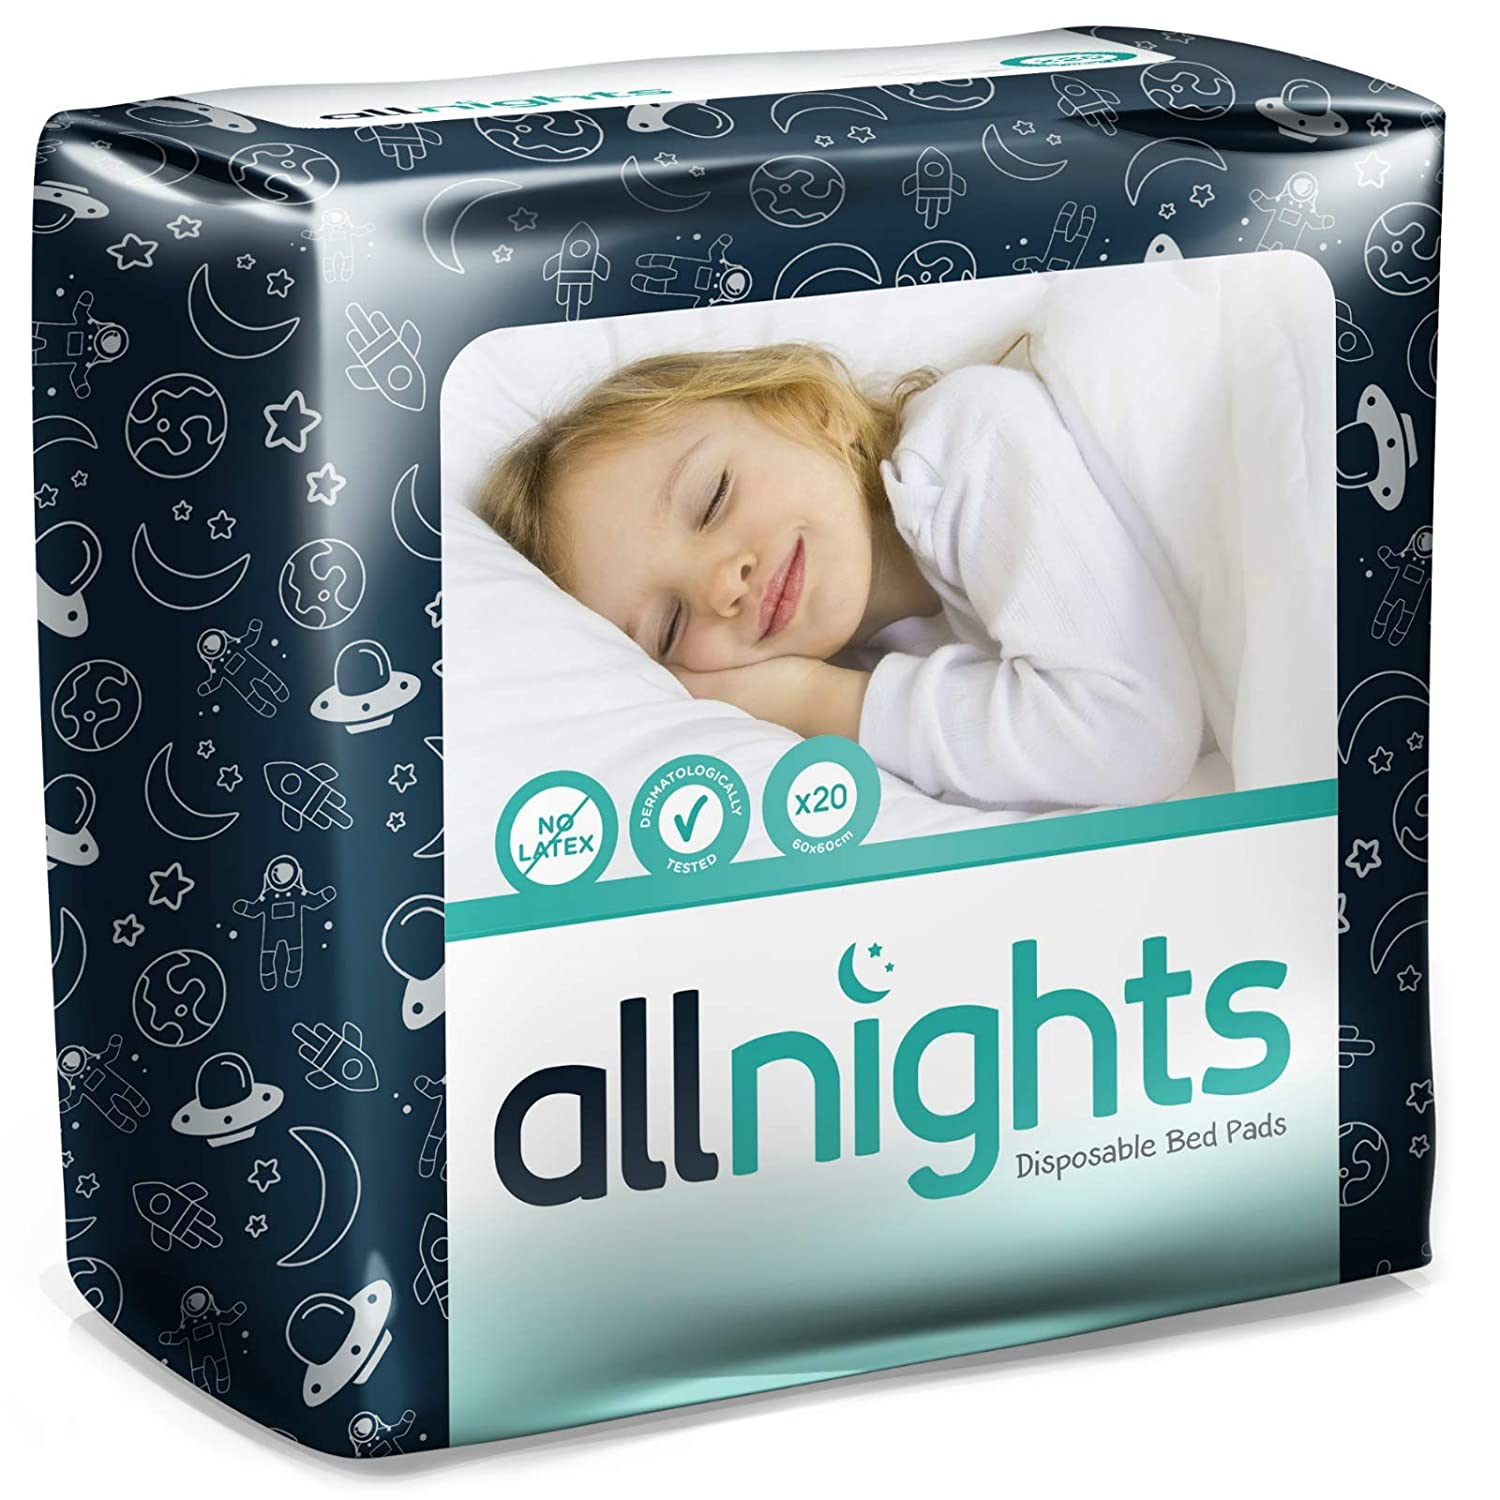 Coprimaterasso Usa E Getta.Drylife All Nights Disposable Bed Pads 60x60cm 1 Pack Of 20